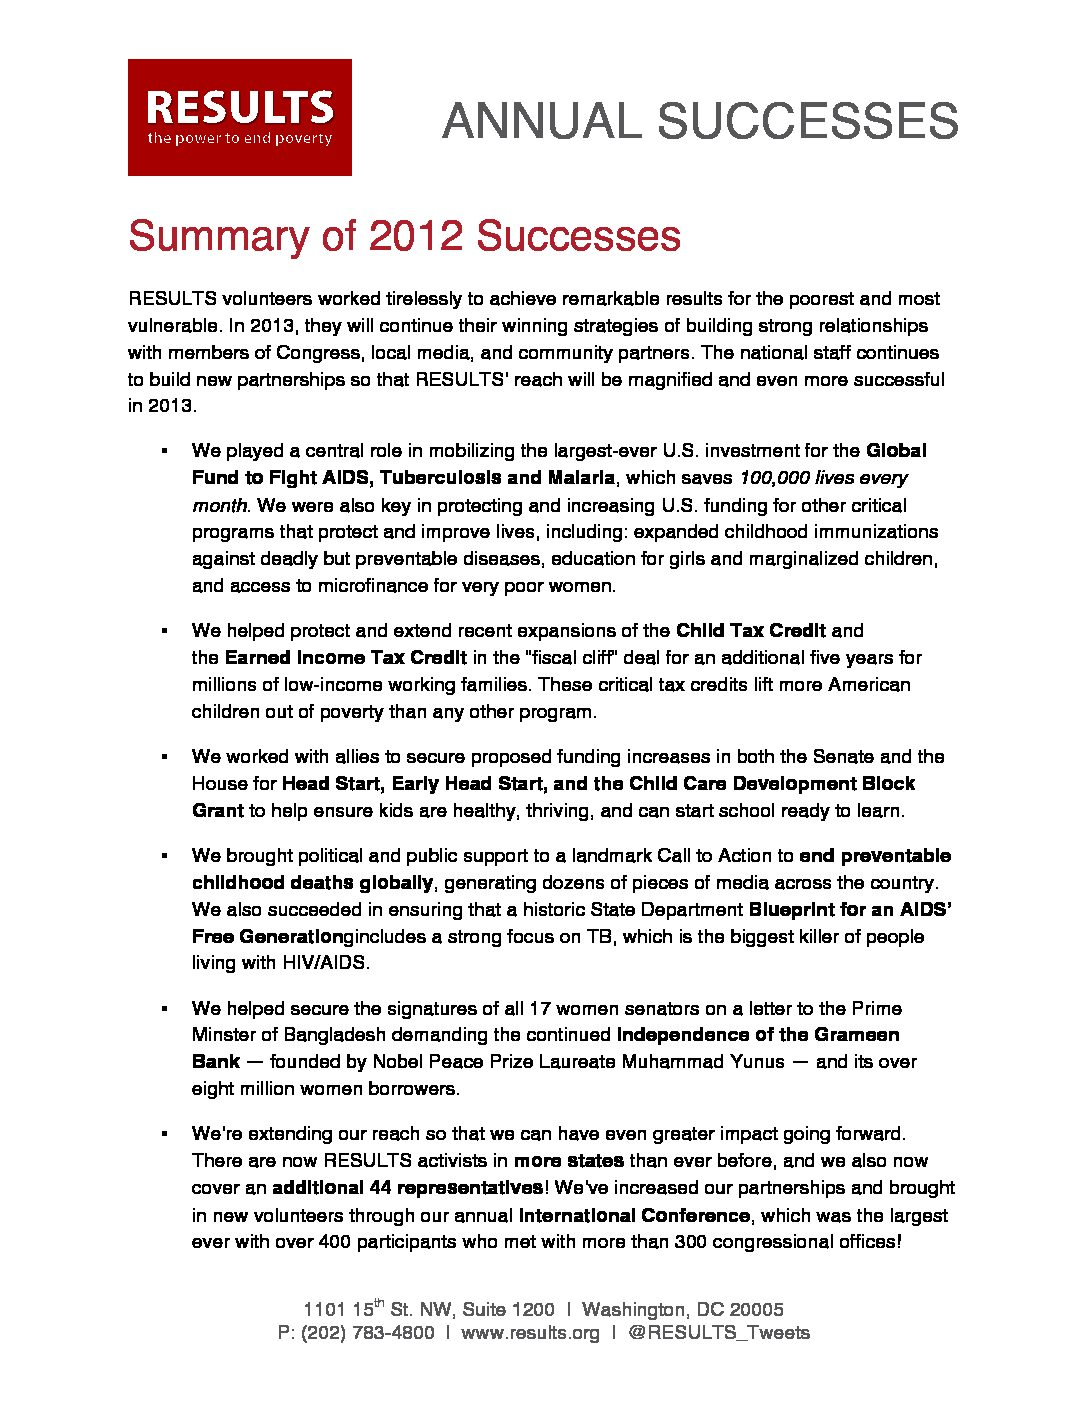 Annual Successes 2012